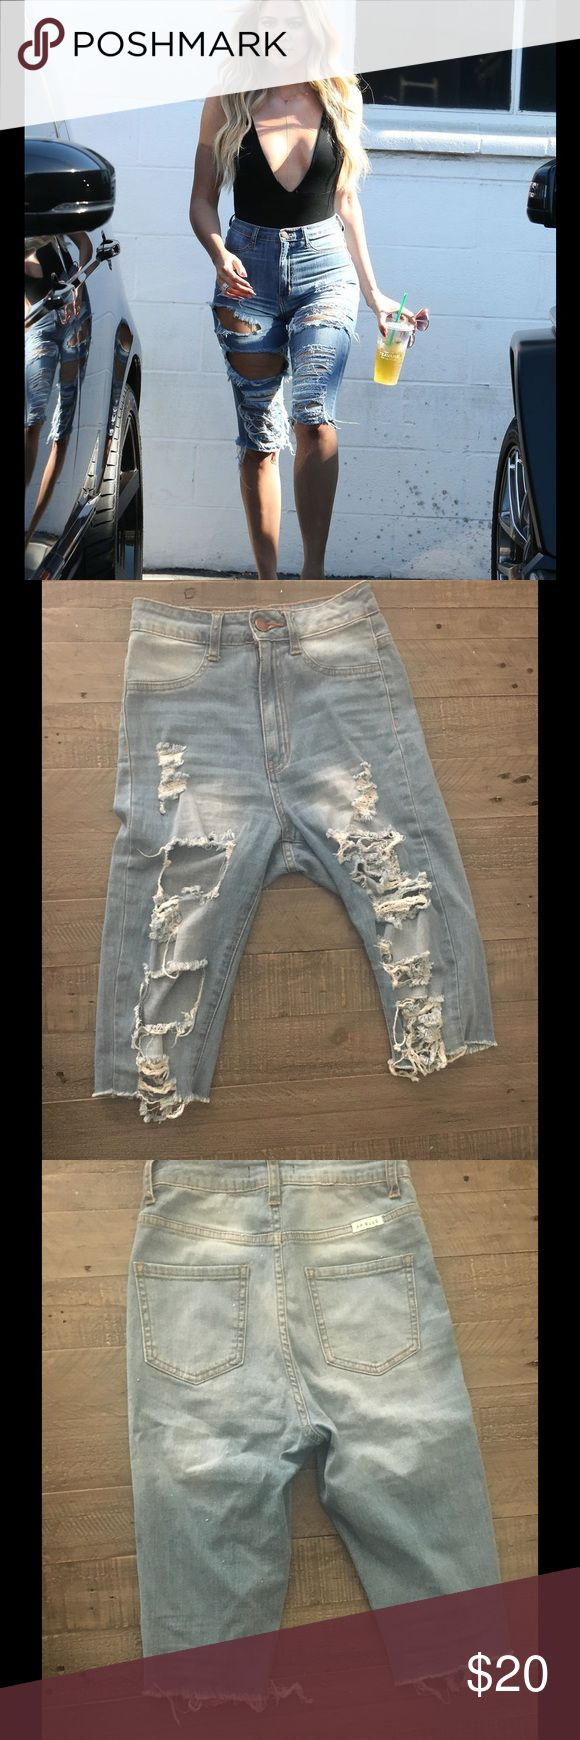 Distressed Jean Shorts Kardashian style denim bermuda shorts. High waisted and distressed. I took the tags off but never got around to wearing them. So they are in the exact new condition I bought them in Fashion Nova Shorts Jean Shorts